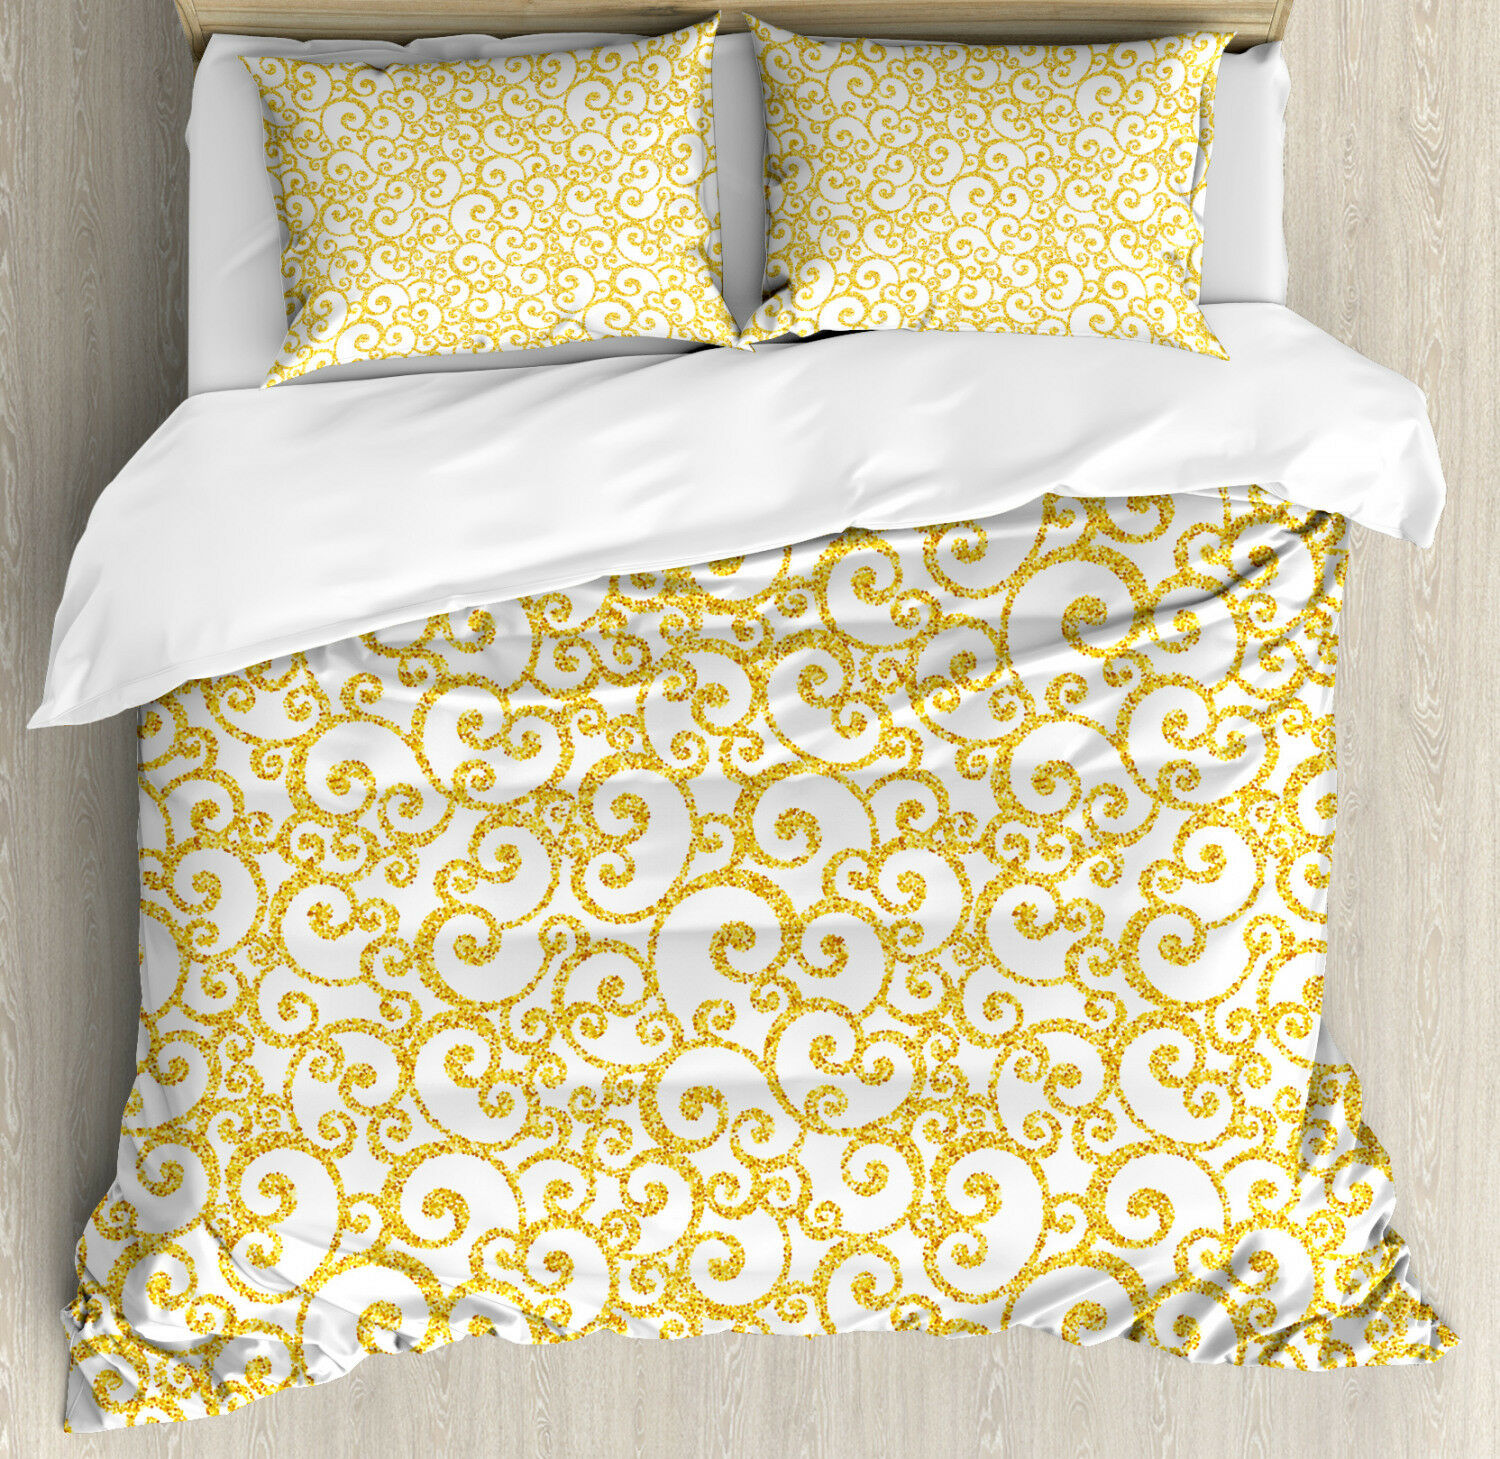 Victorian Duvet Cover Set with Pillow Shams Swirling Lines Floral Print